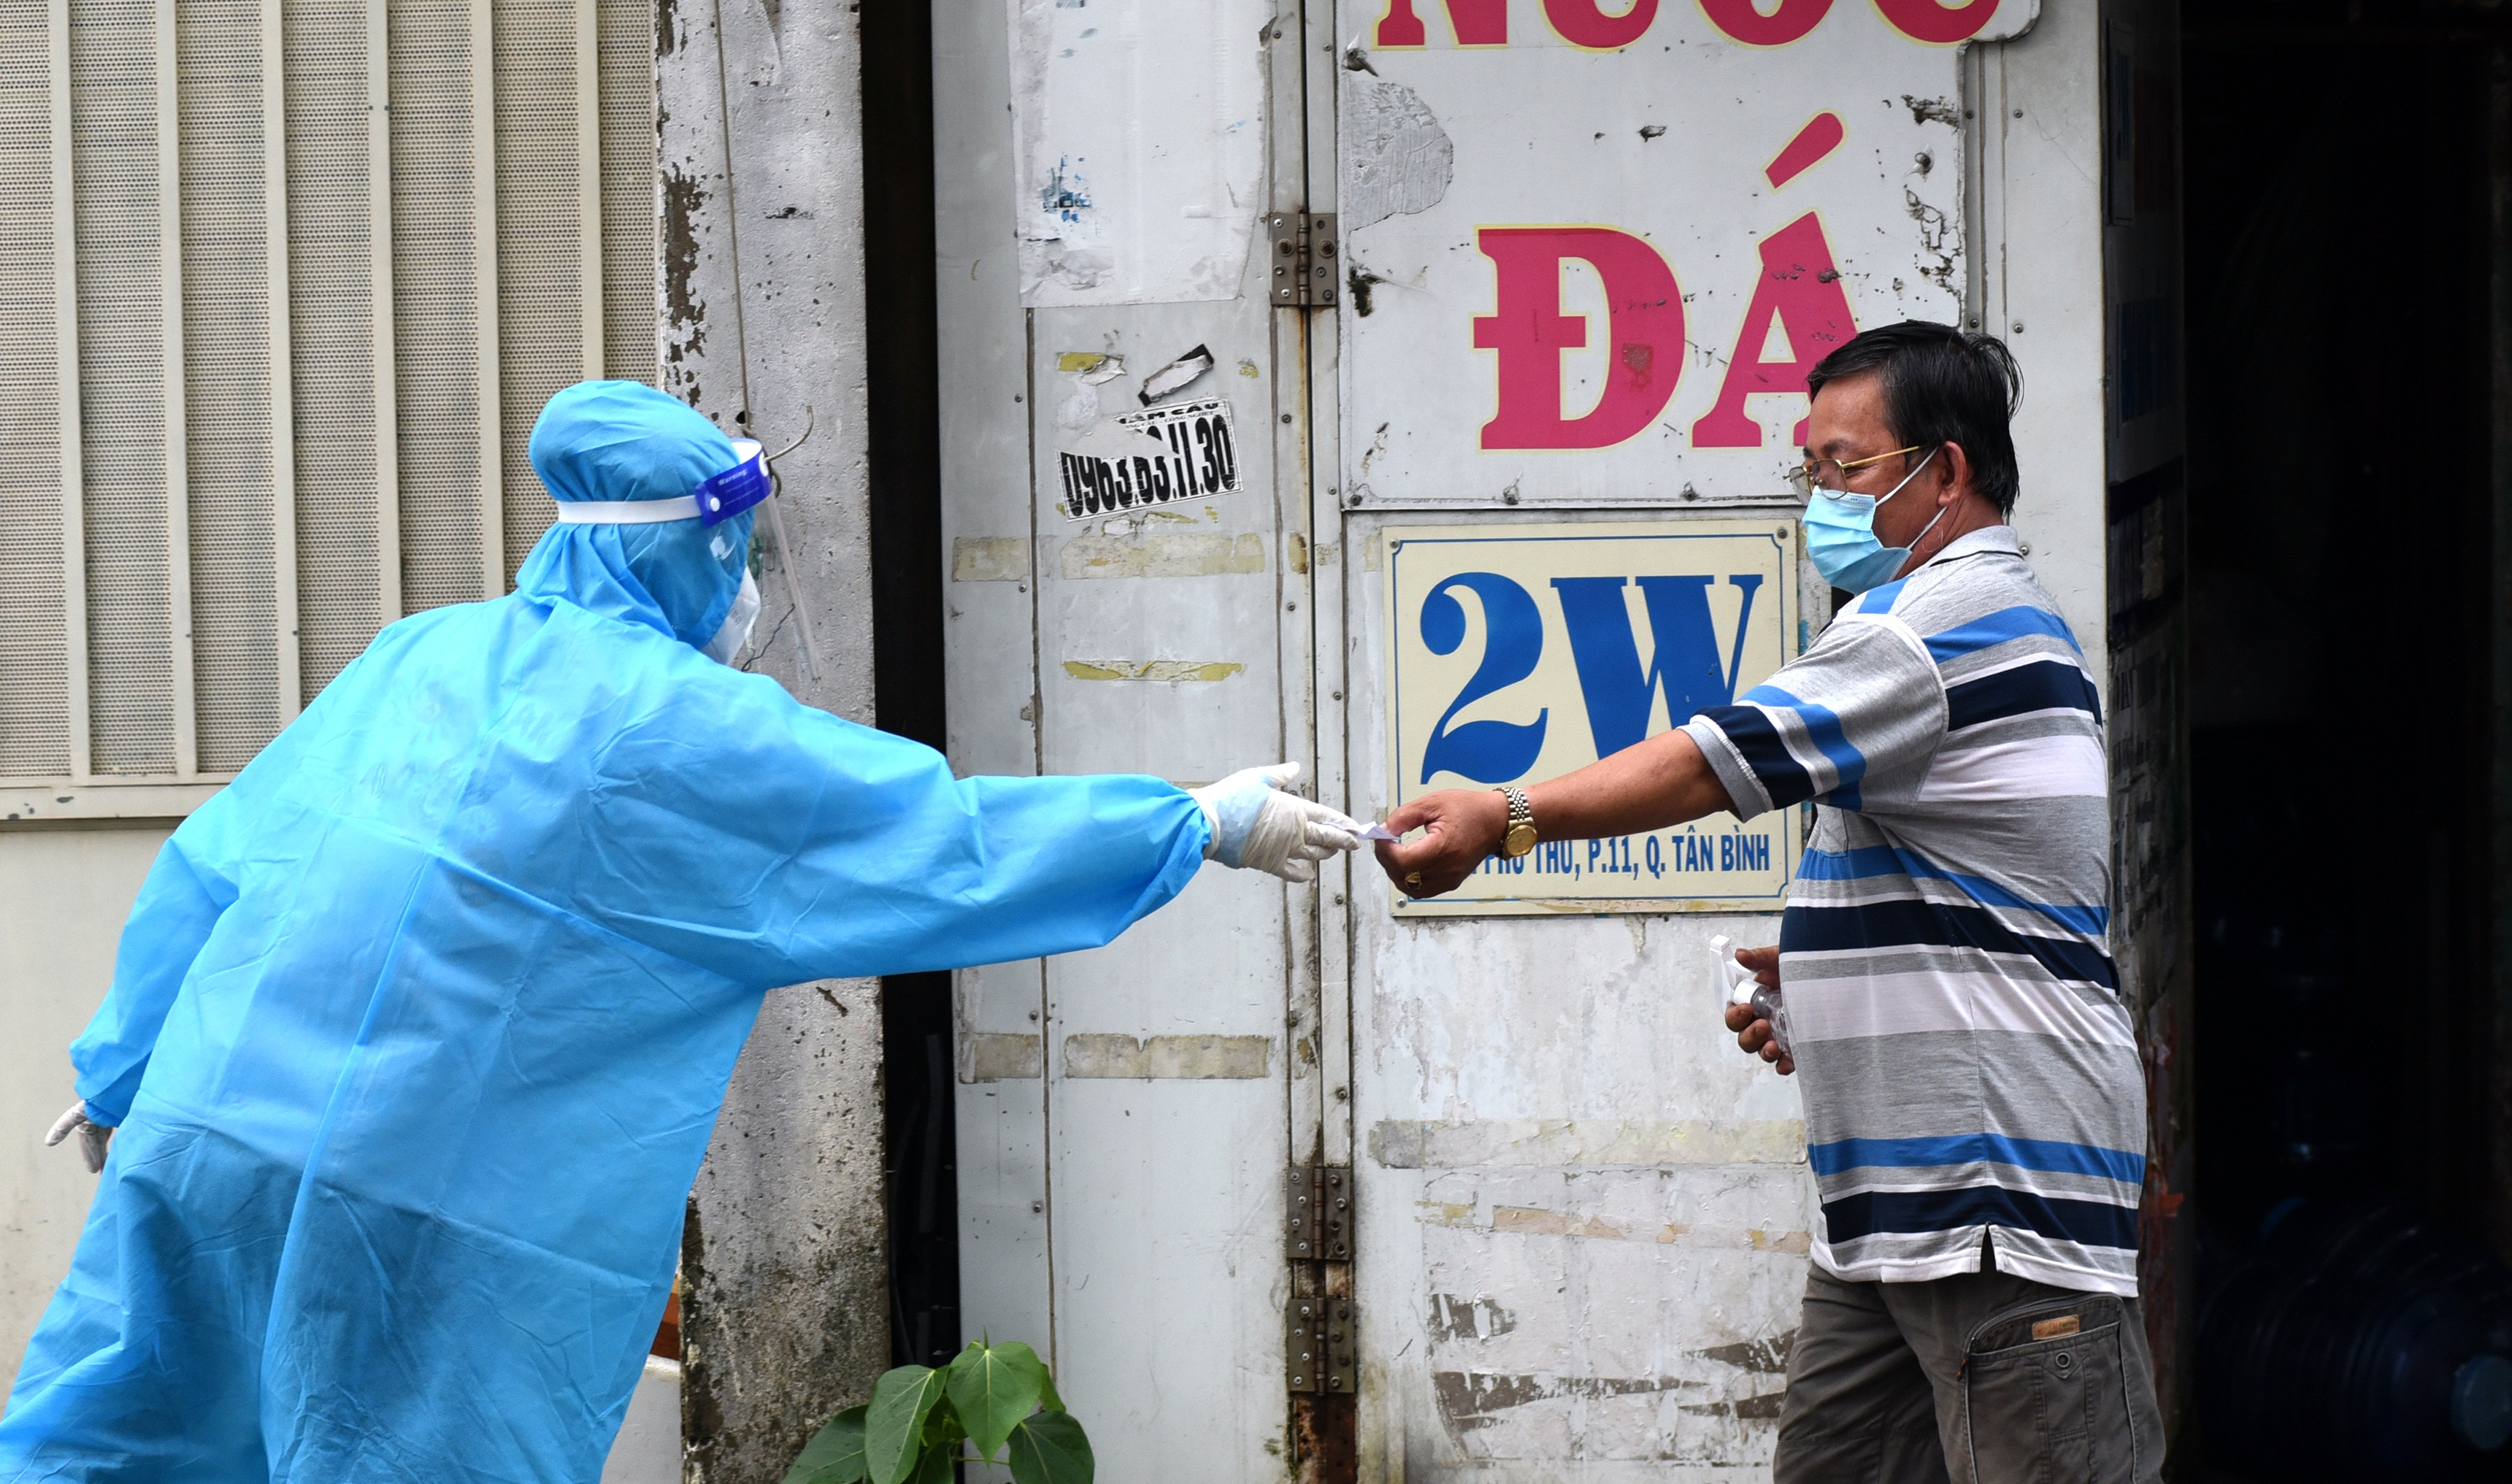 A medical worker gives a rapid antigen COVID-19 test kit to a resident of Tan Binh District in Ho Chi Minh City. Photo: Duyen Phan / Tuoi Tre